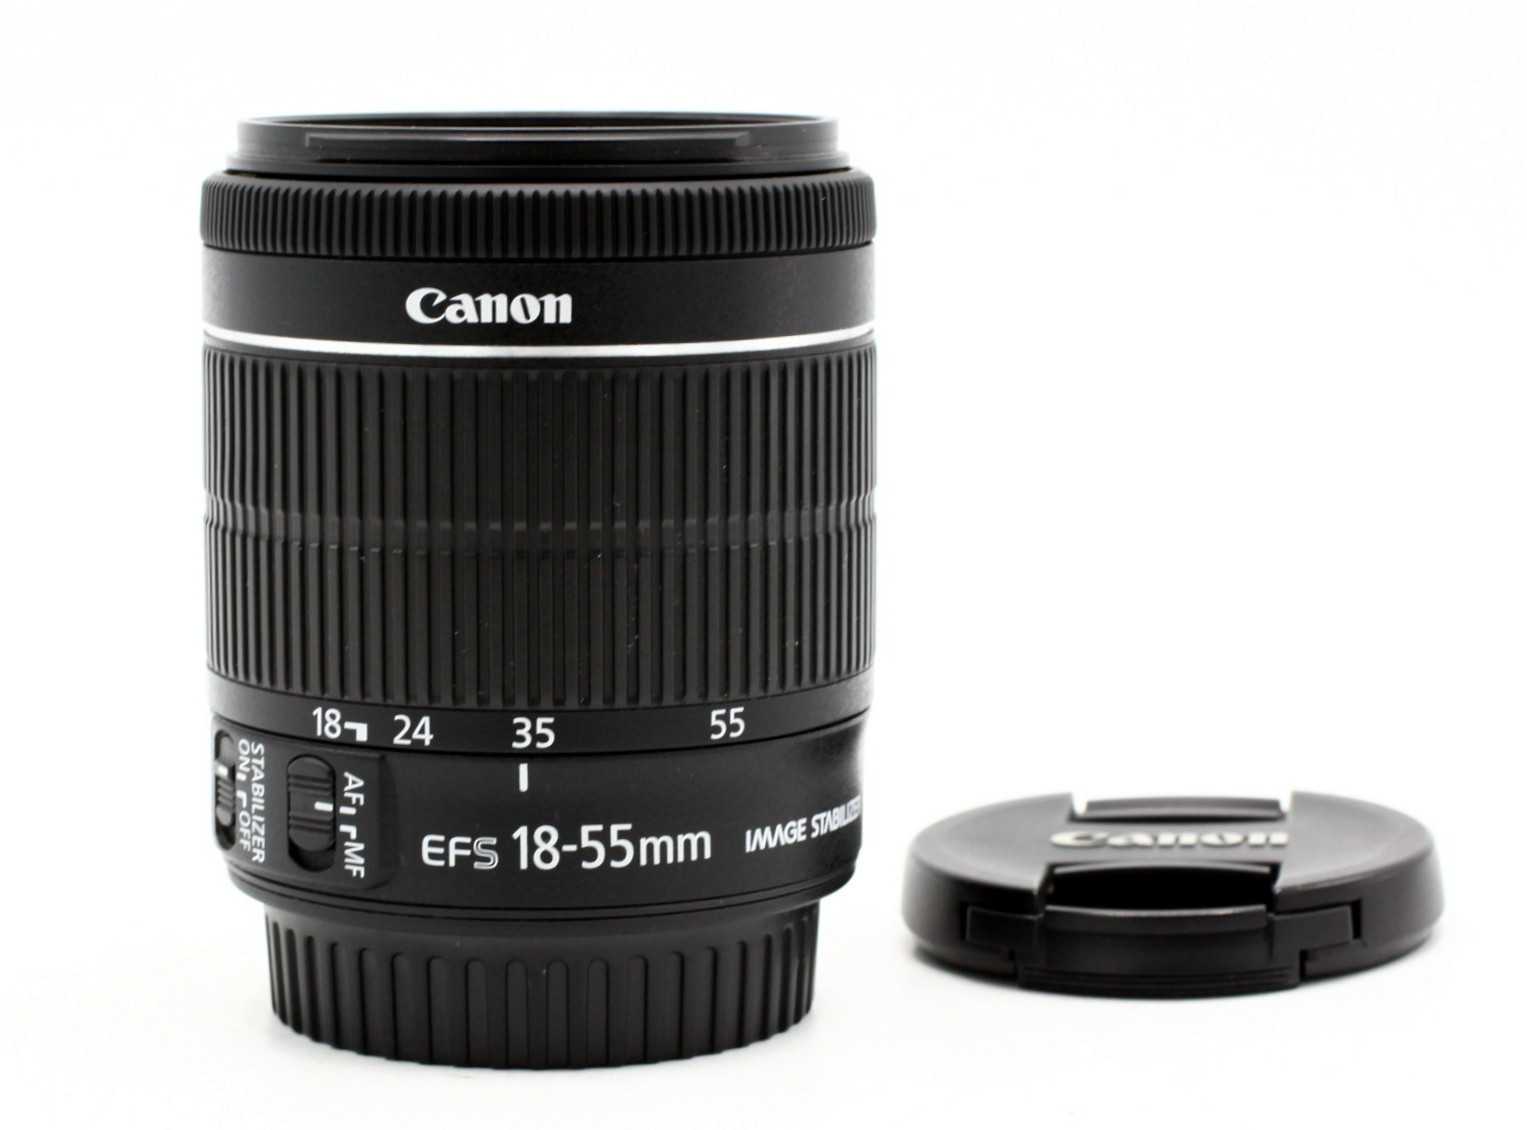 Canon EF-S 18-55mm F/3.5-5.6 IS STM occasion